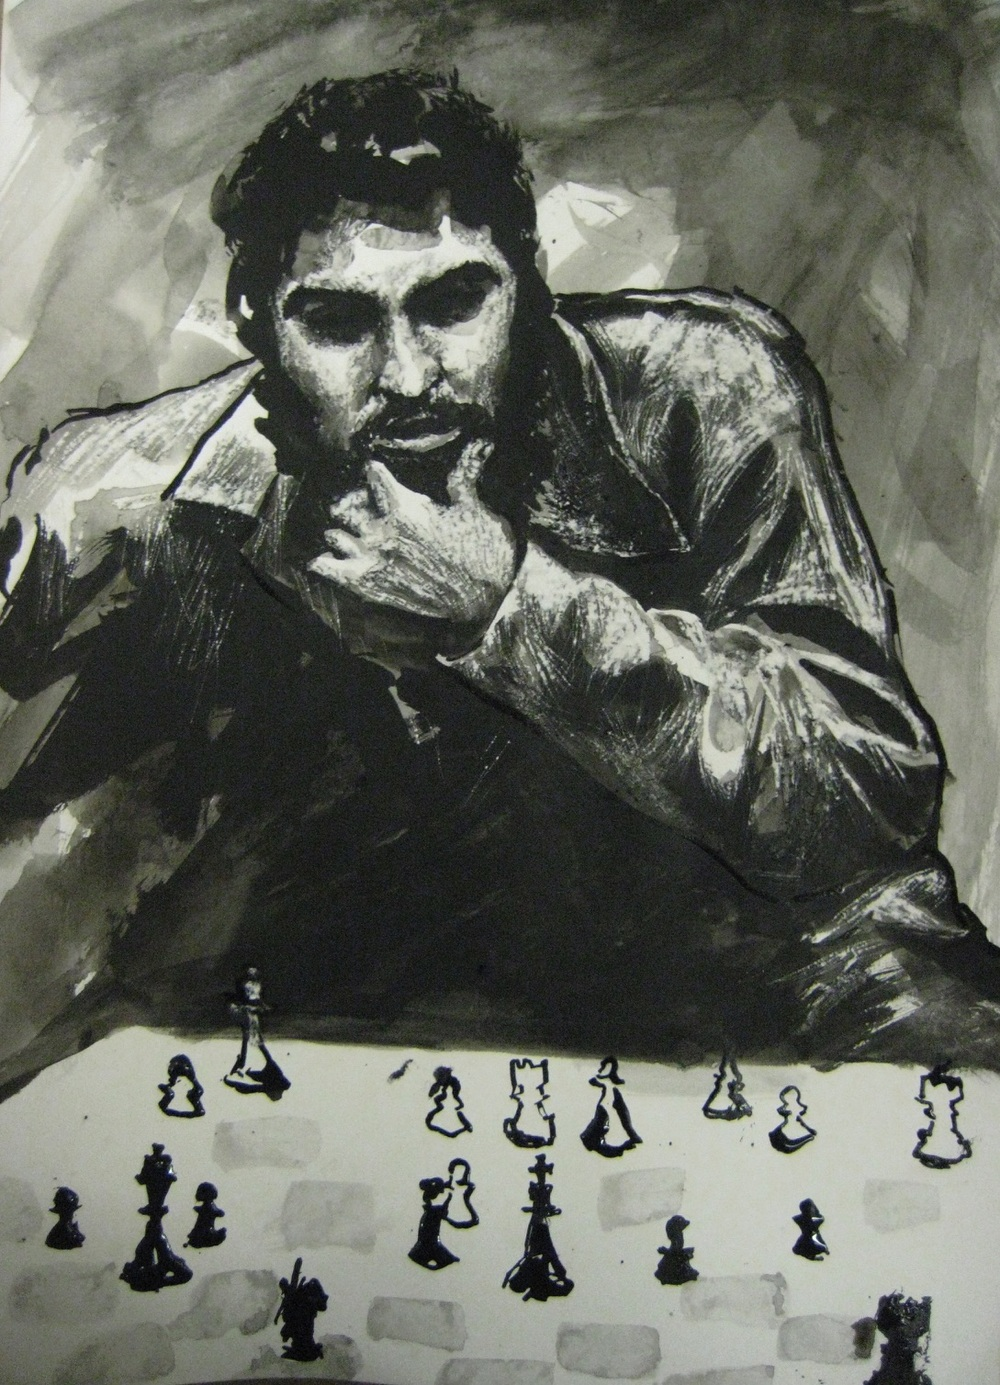 thomas moore Chess  .jpg